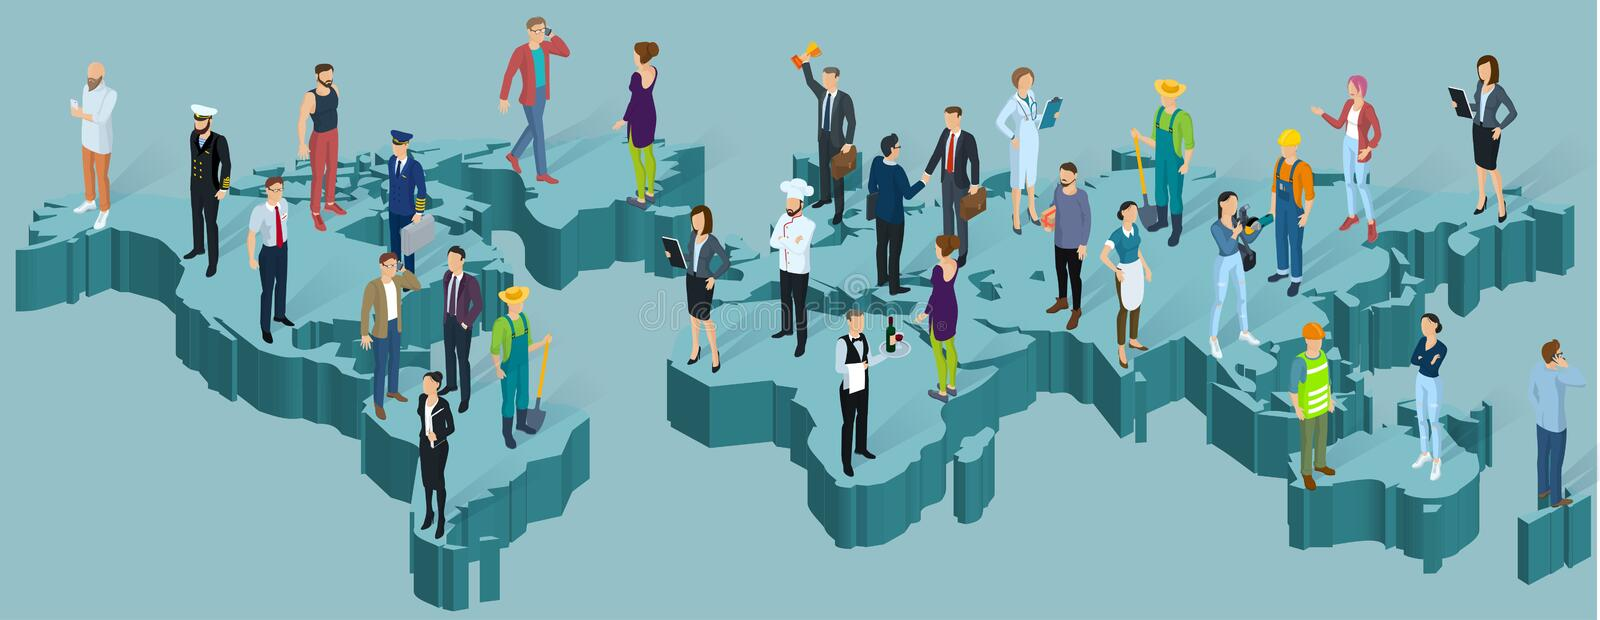 Global world isometric map. People of different professions, population infographic presentation vector template vector illustration